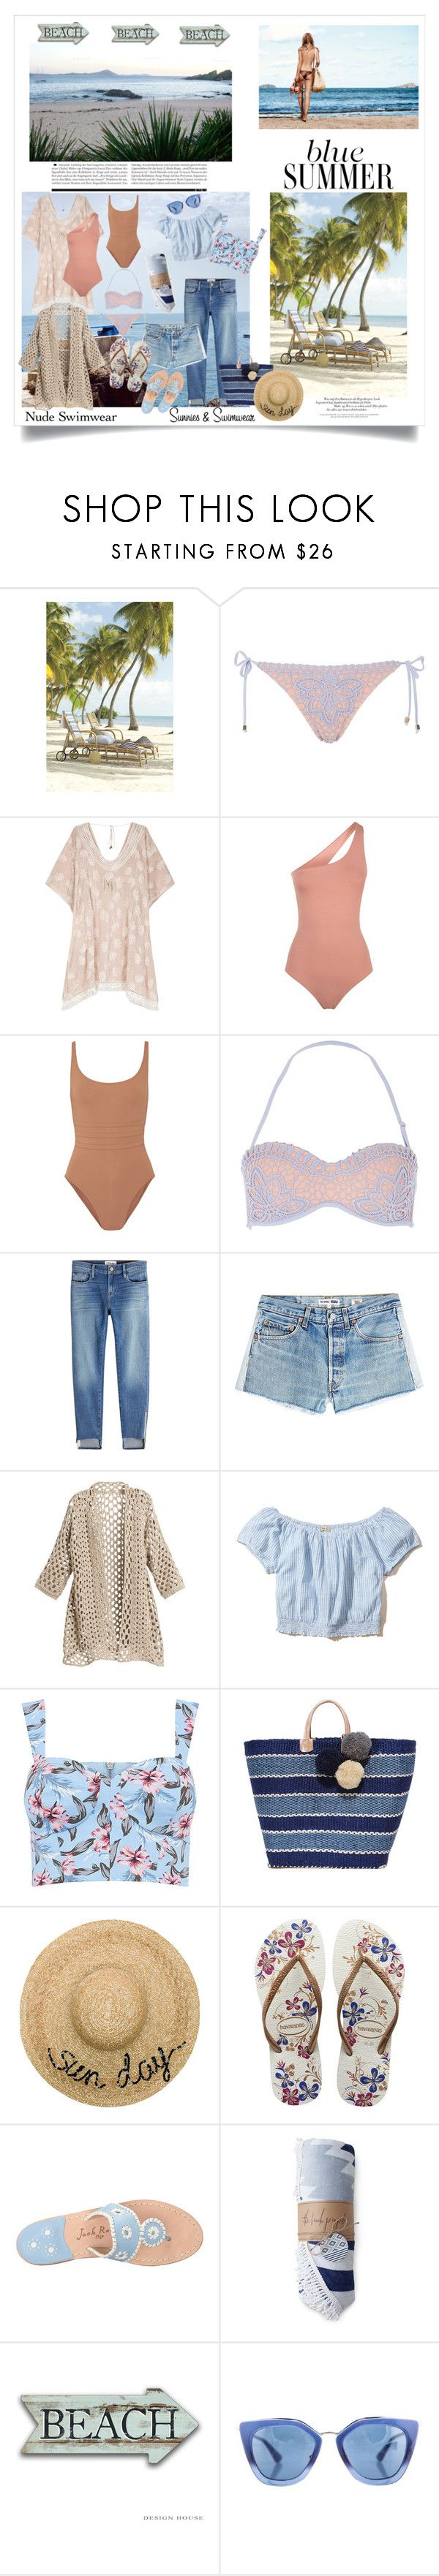 """A Free For All At The Beach!"" by onesweetthing ❤ liked on Polyvore featuring Melissa Odabash, Eres, River Island, Frame, RE/DONE, Hollister Co., Mar y Sol, Eugenia Kim, Havaianas and Jack Rogers"